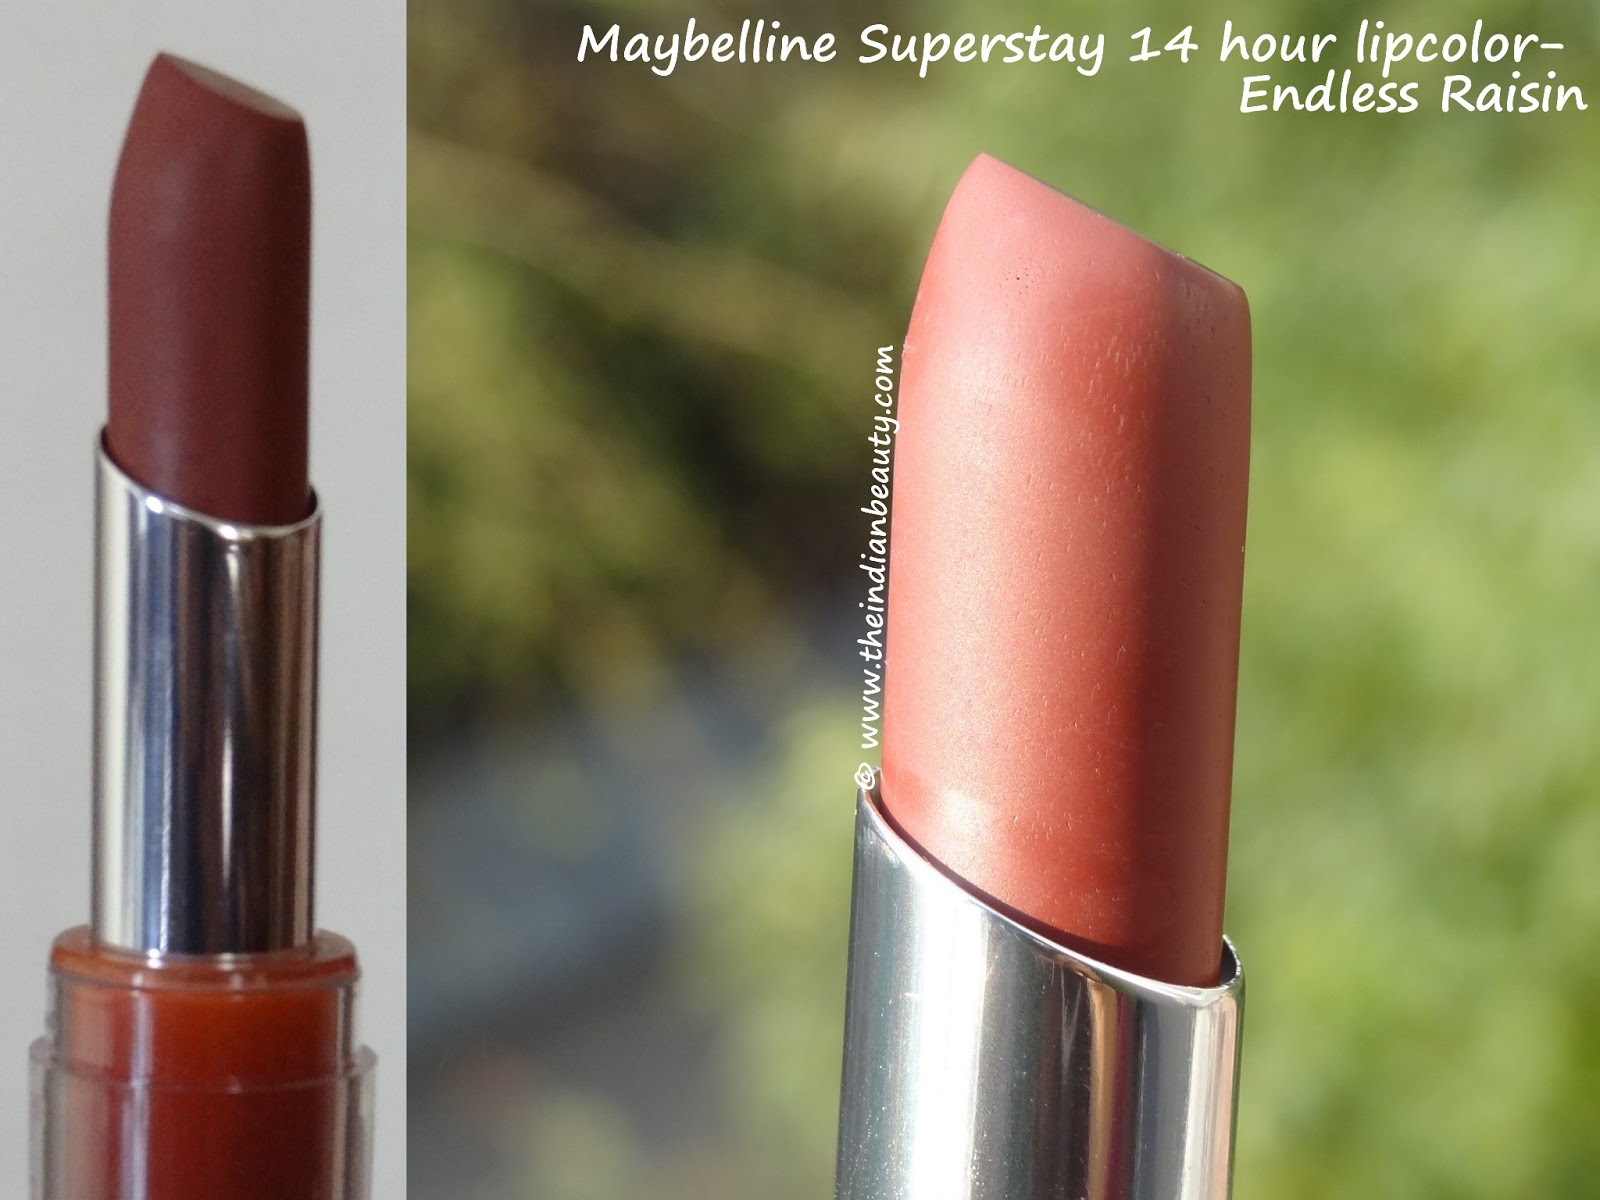 Maybelline 14 Hour Lipstick Price 14 Hour Lipstick Endless